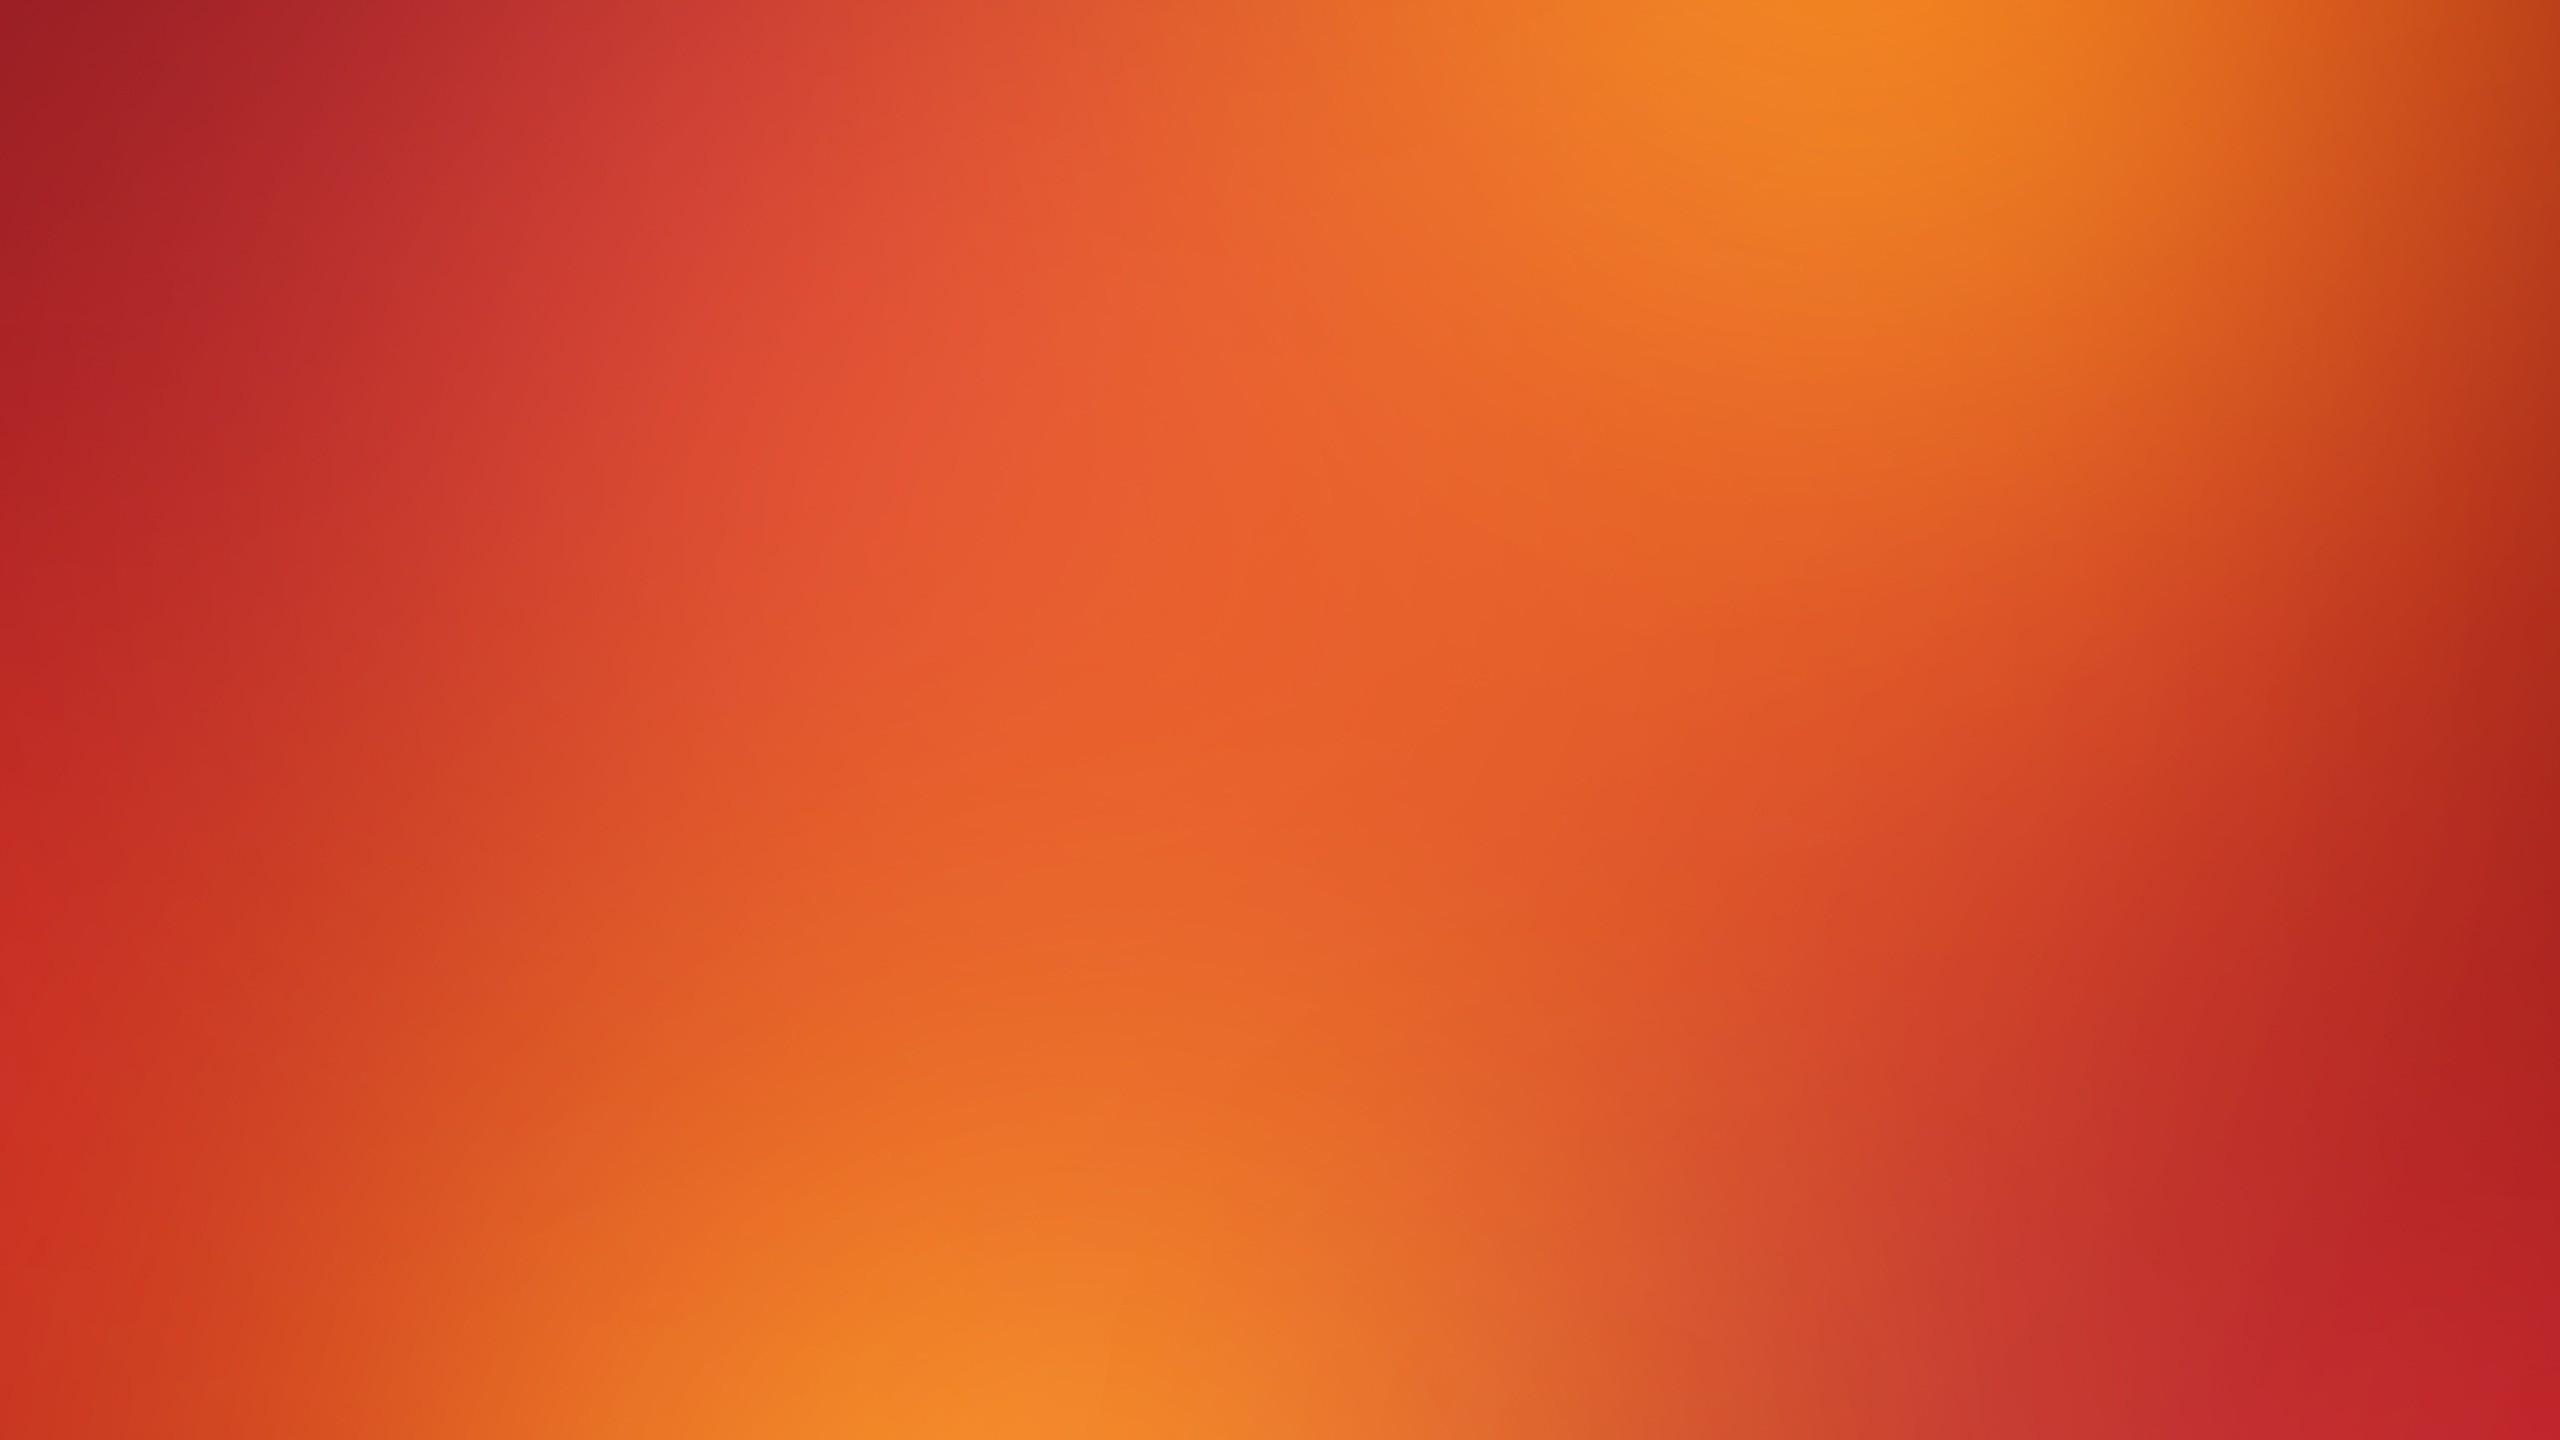 2560x1440 Orange Gradient Wallpaper